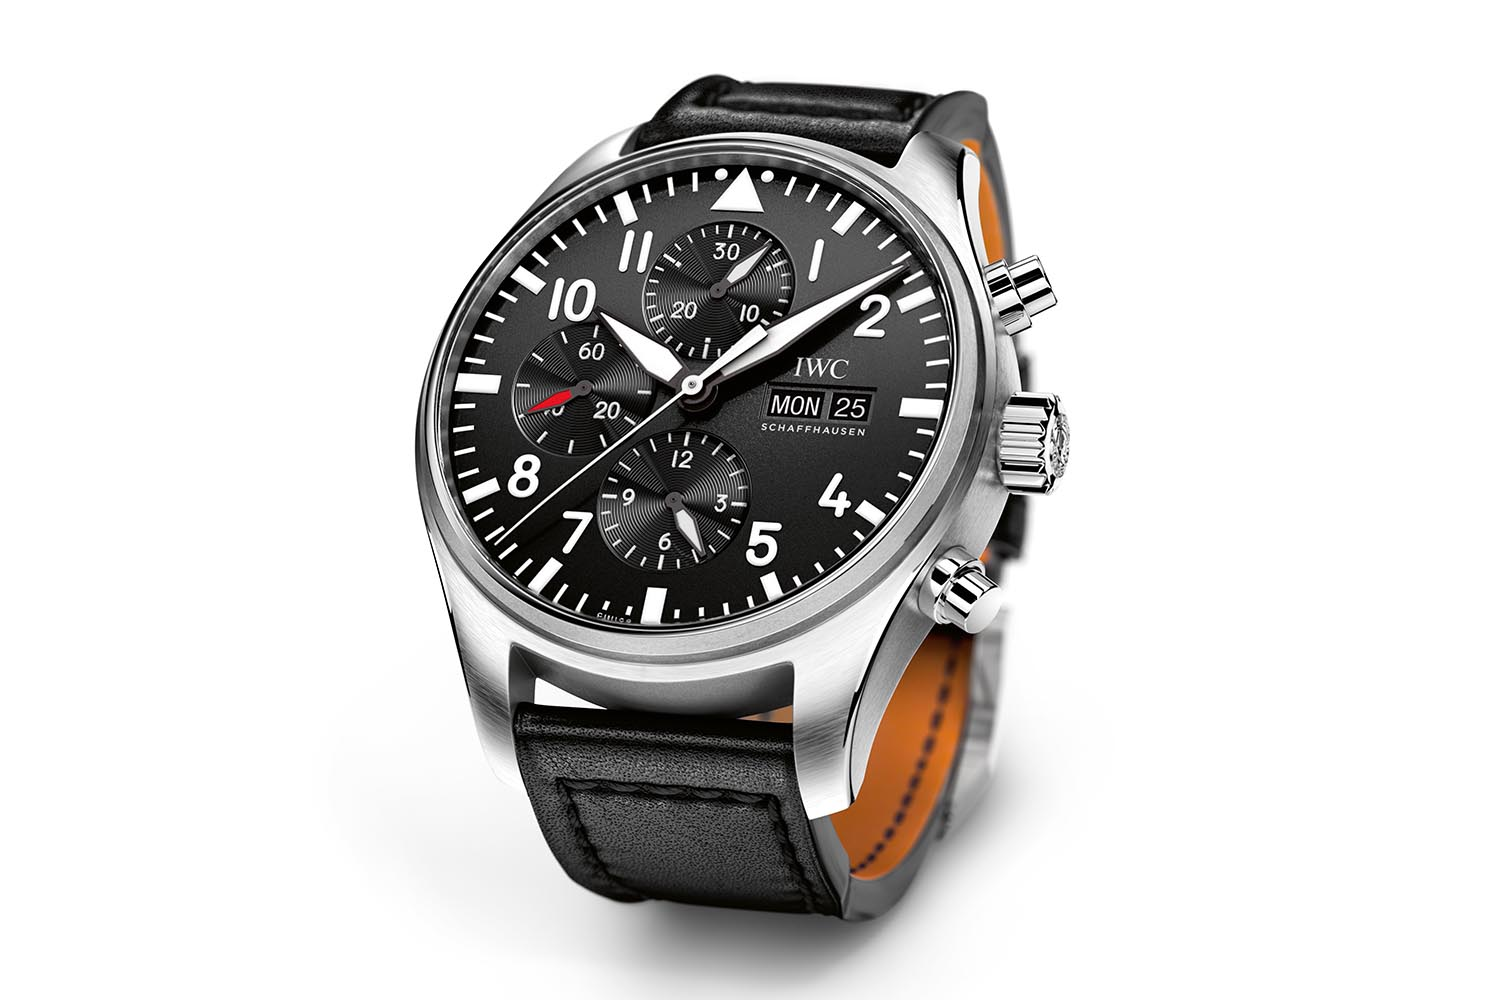 IWC Pilot's Watch Chronograph IW377709 - SIHH 2016